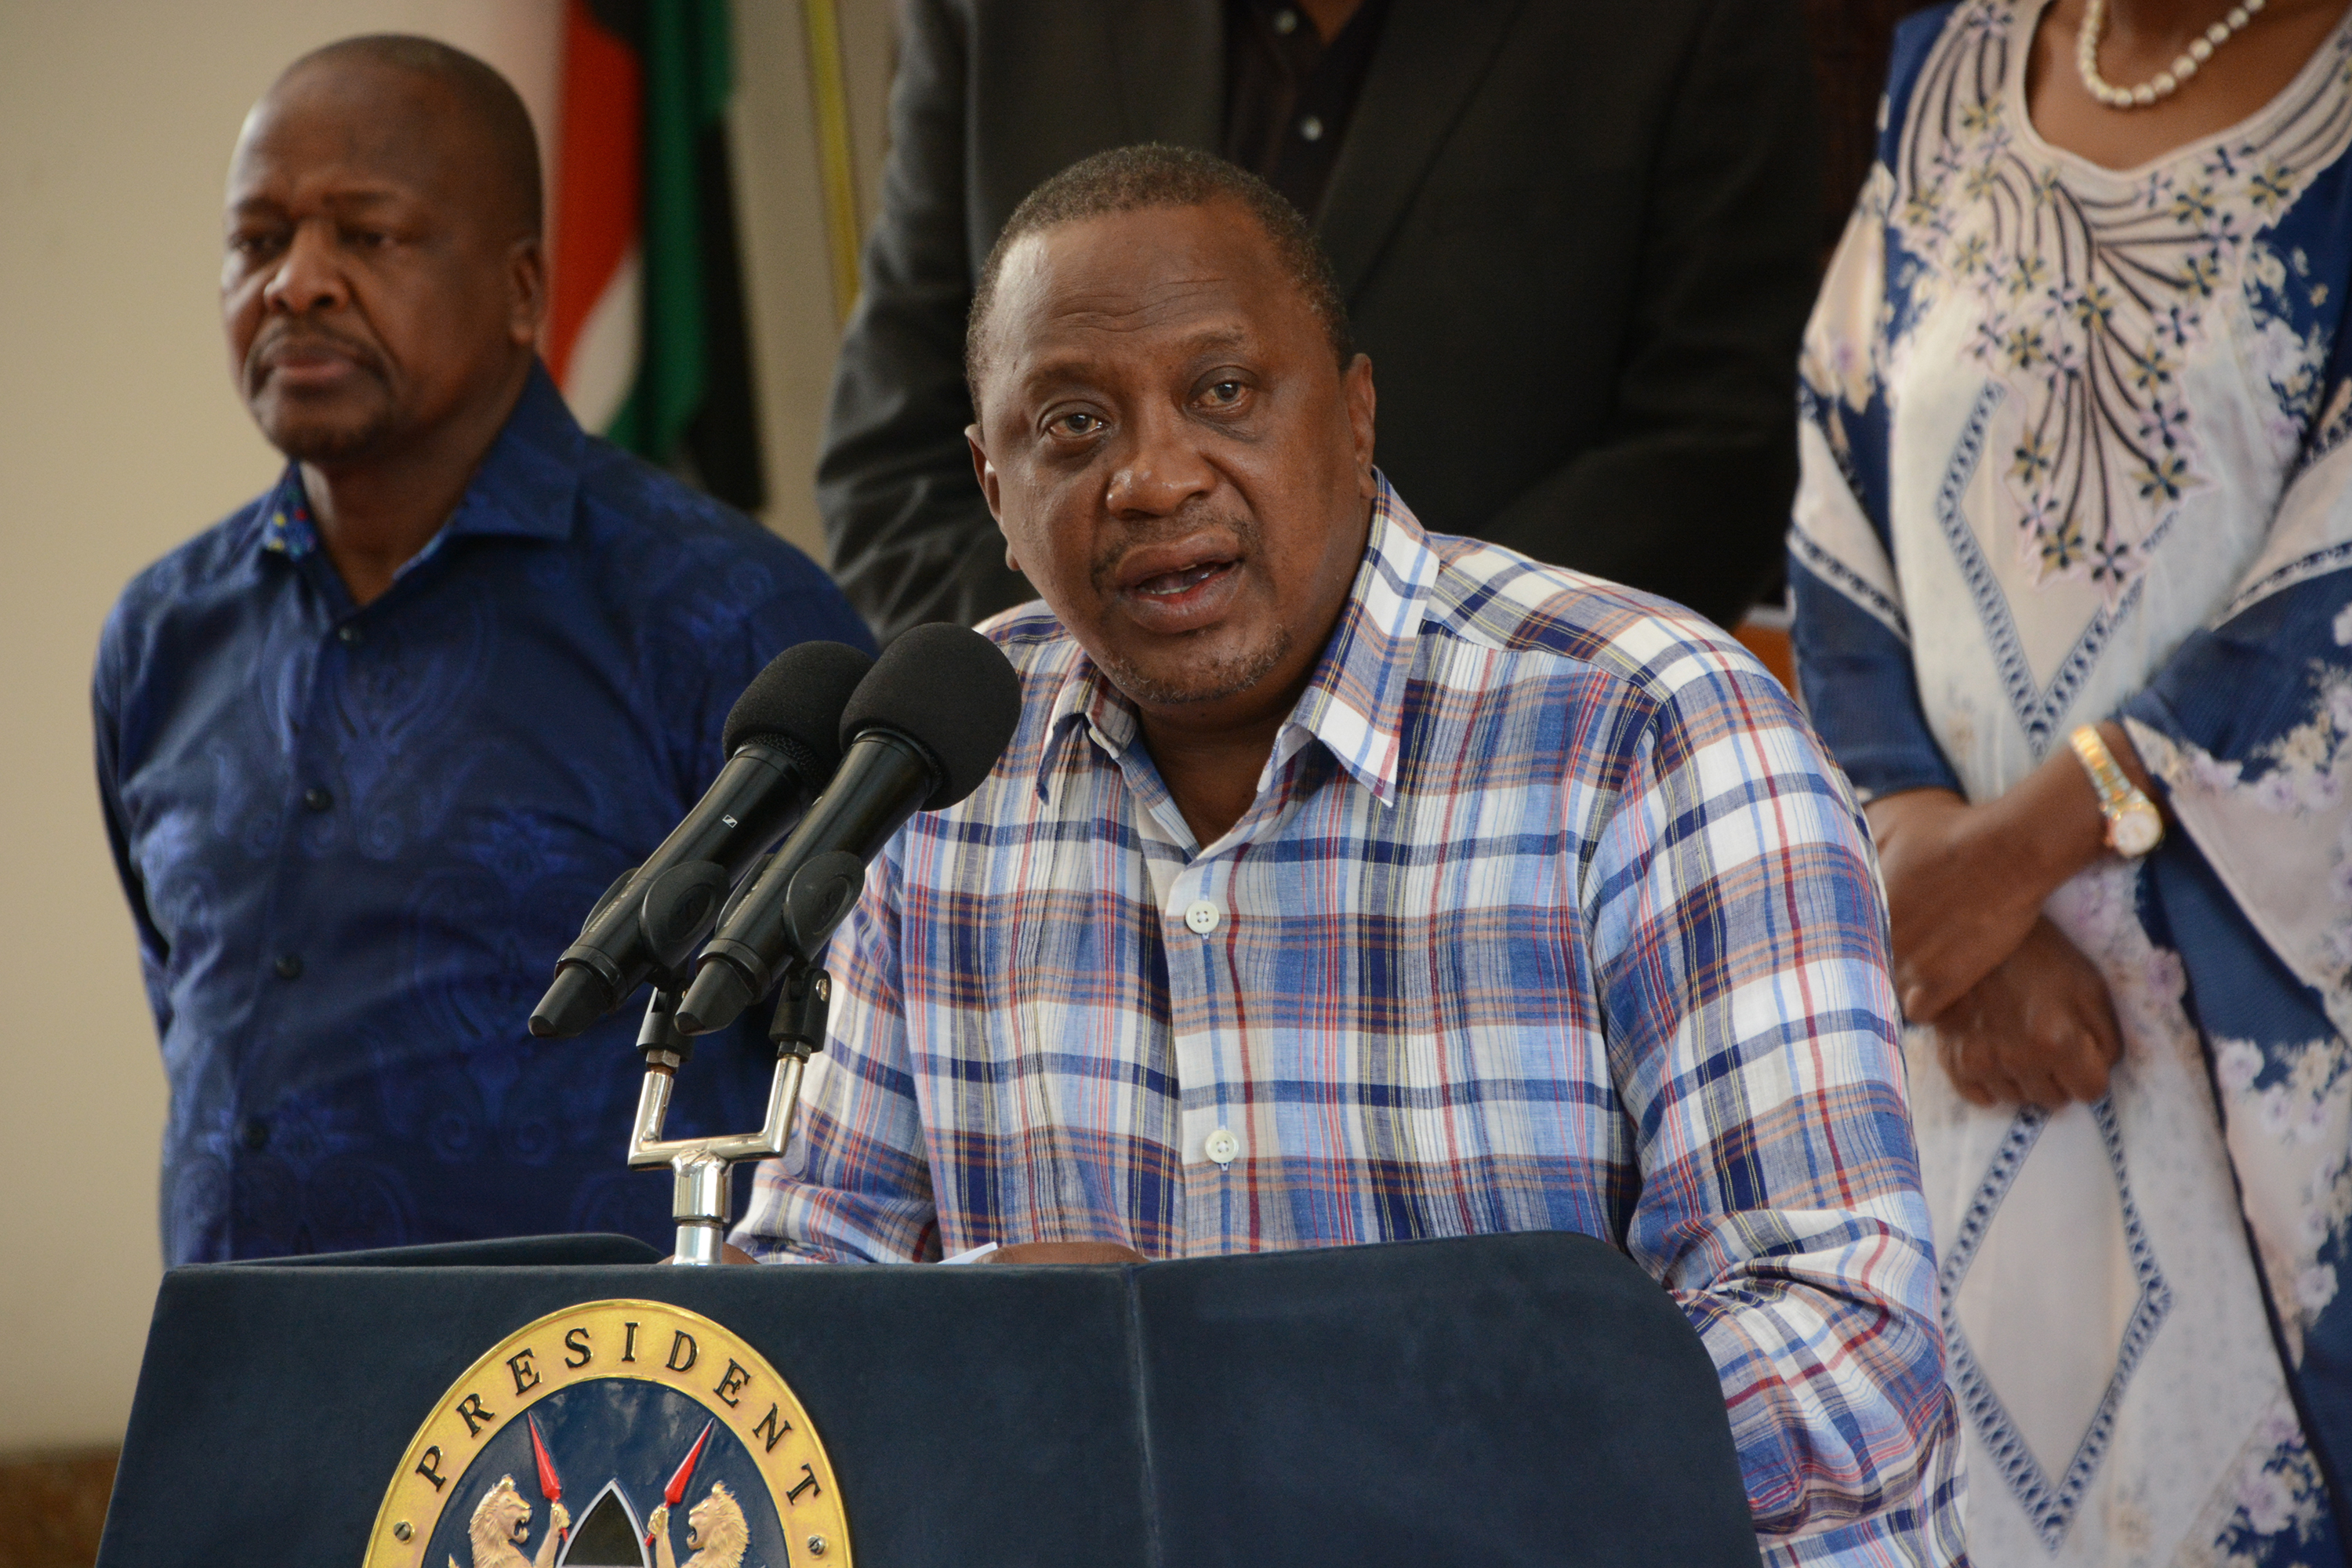 President Uhuru Kenyatta speaks about the coronavirus crisis during a press conference on March 15 at Harambee House in Nairobi, Kenya.